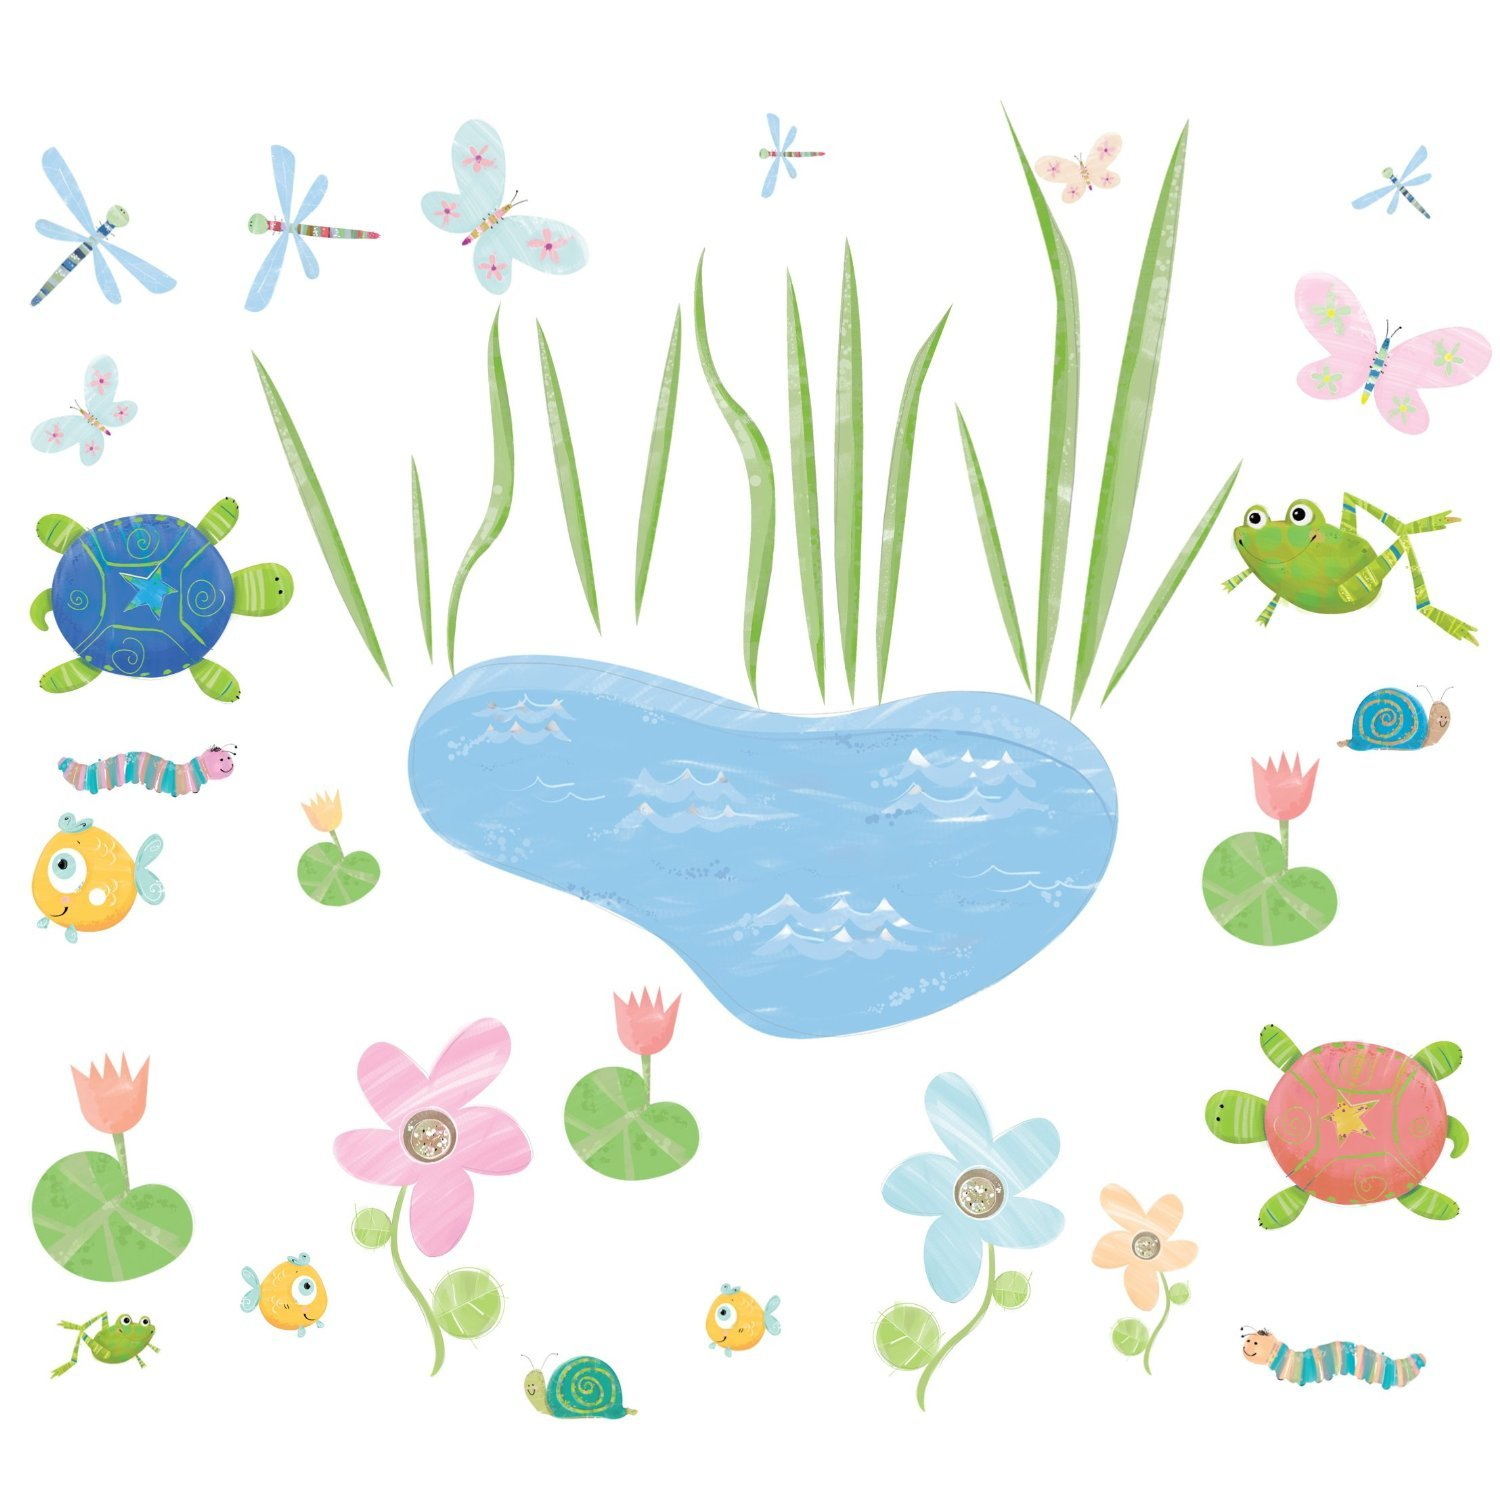 RoomMates Hoppy Pond Peel and Stick Wall Decals